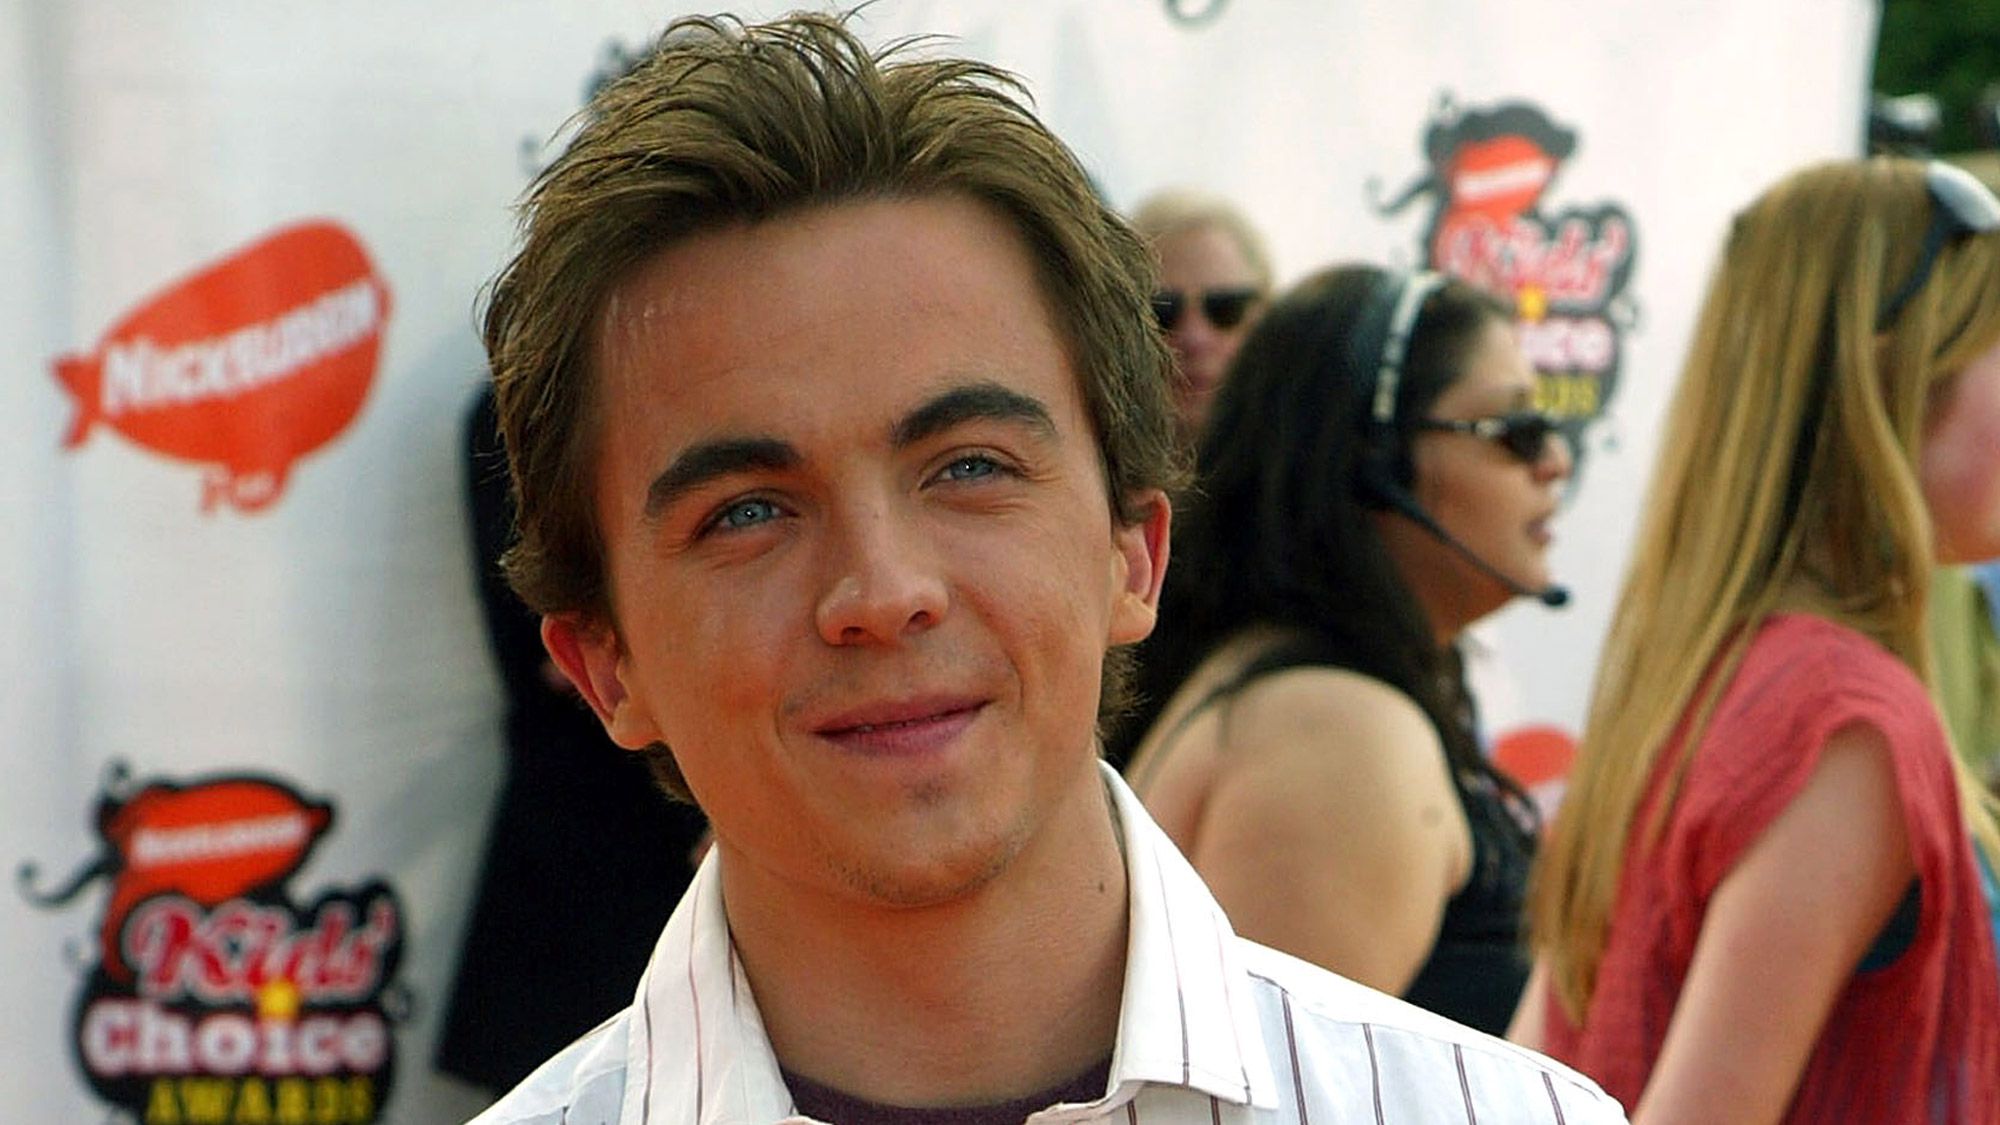 Frankie Muniz sur le tapis orange de la cérémonie des Kids Choice Awards en 2005.